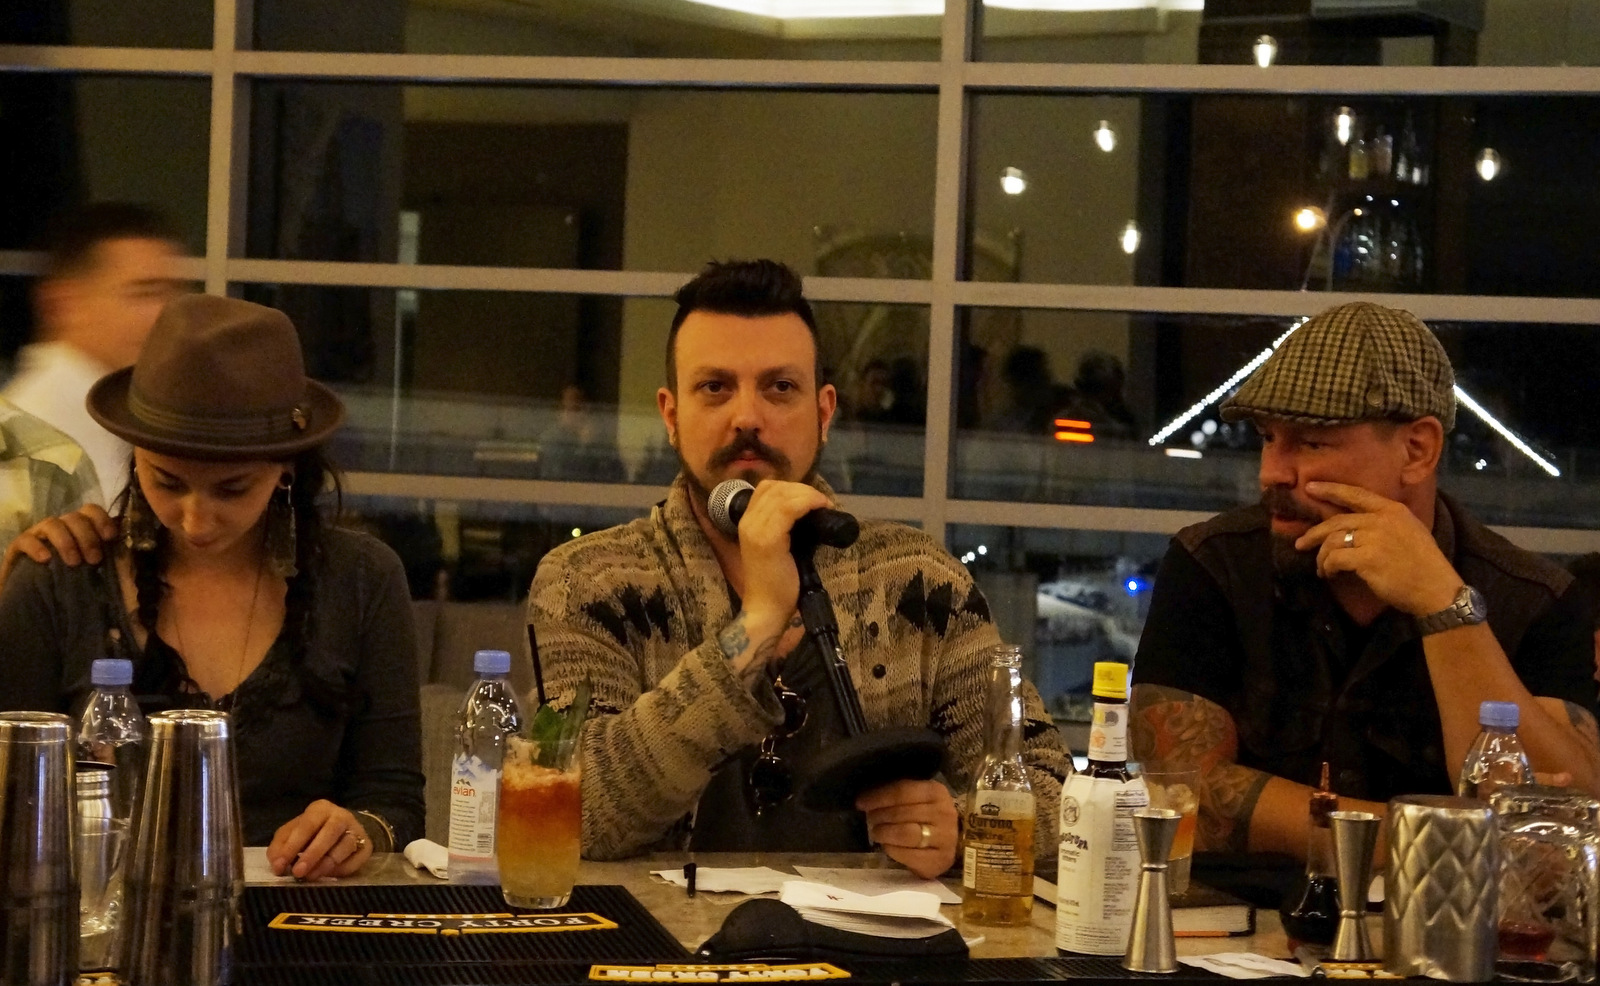 Feedback from industry veterans is helping young bartenders hone their edge. Judging were, from left, Kerry Quaile and Jon Karel of Buffalo Proper, and Tim Stevens of Ballyhoo. Not shown: Dan Hagen of Billy Club, and USBG chapter president Lauren Kowalski. (Lizz Schumer/Special to The News)